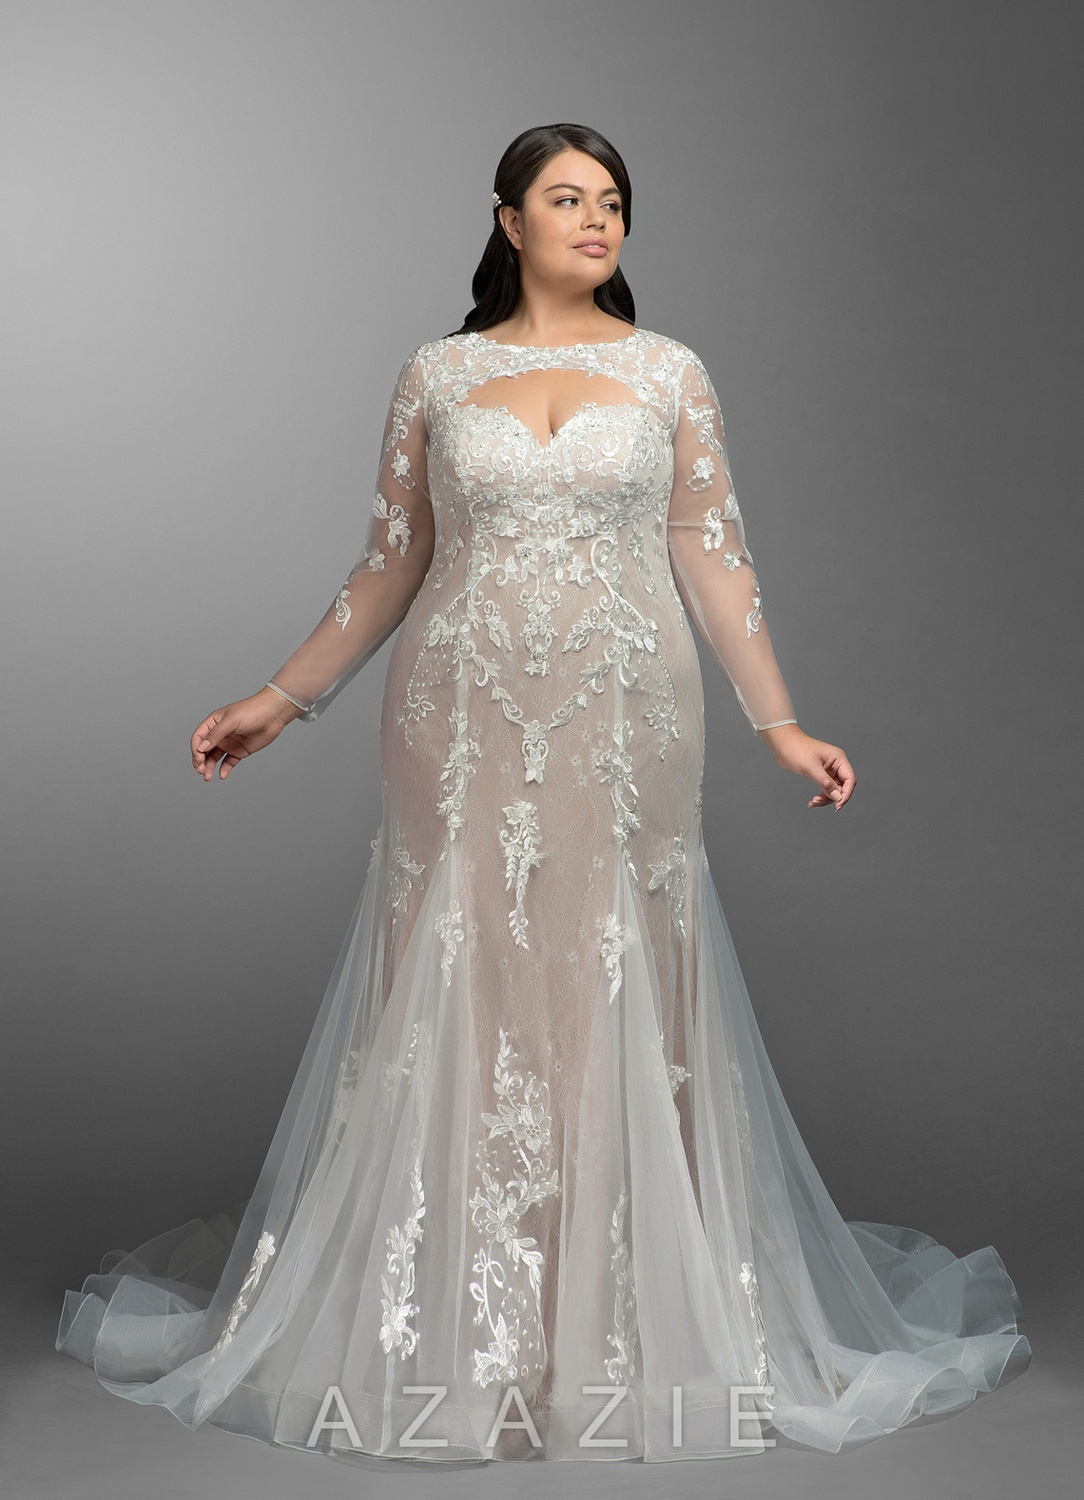 Here are 15 Must Have Azazie Plus Size Wedding Gowns UNDER $600!